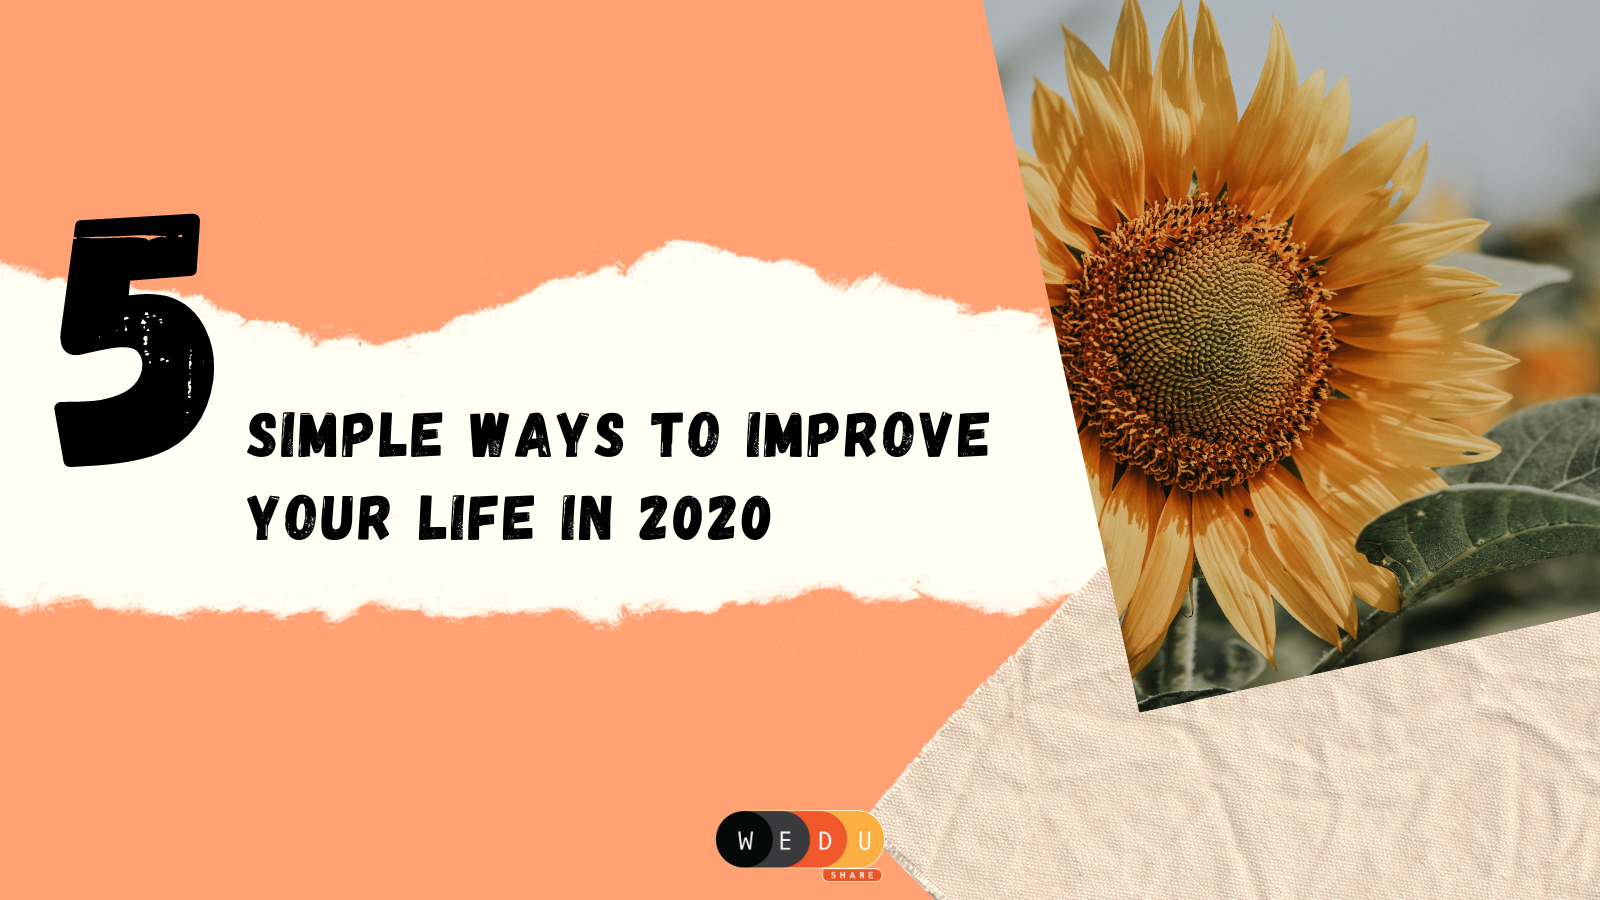 5 Simple Ways To Improve Your Life in 2020